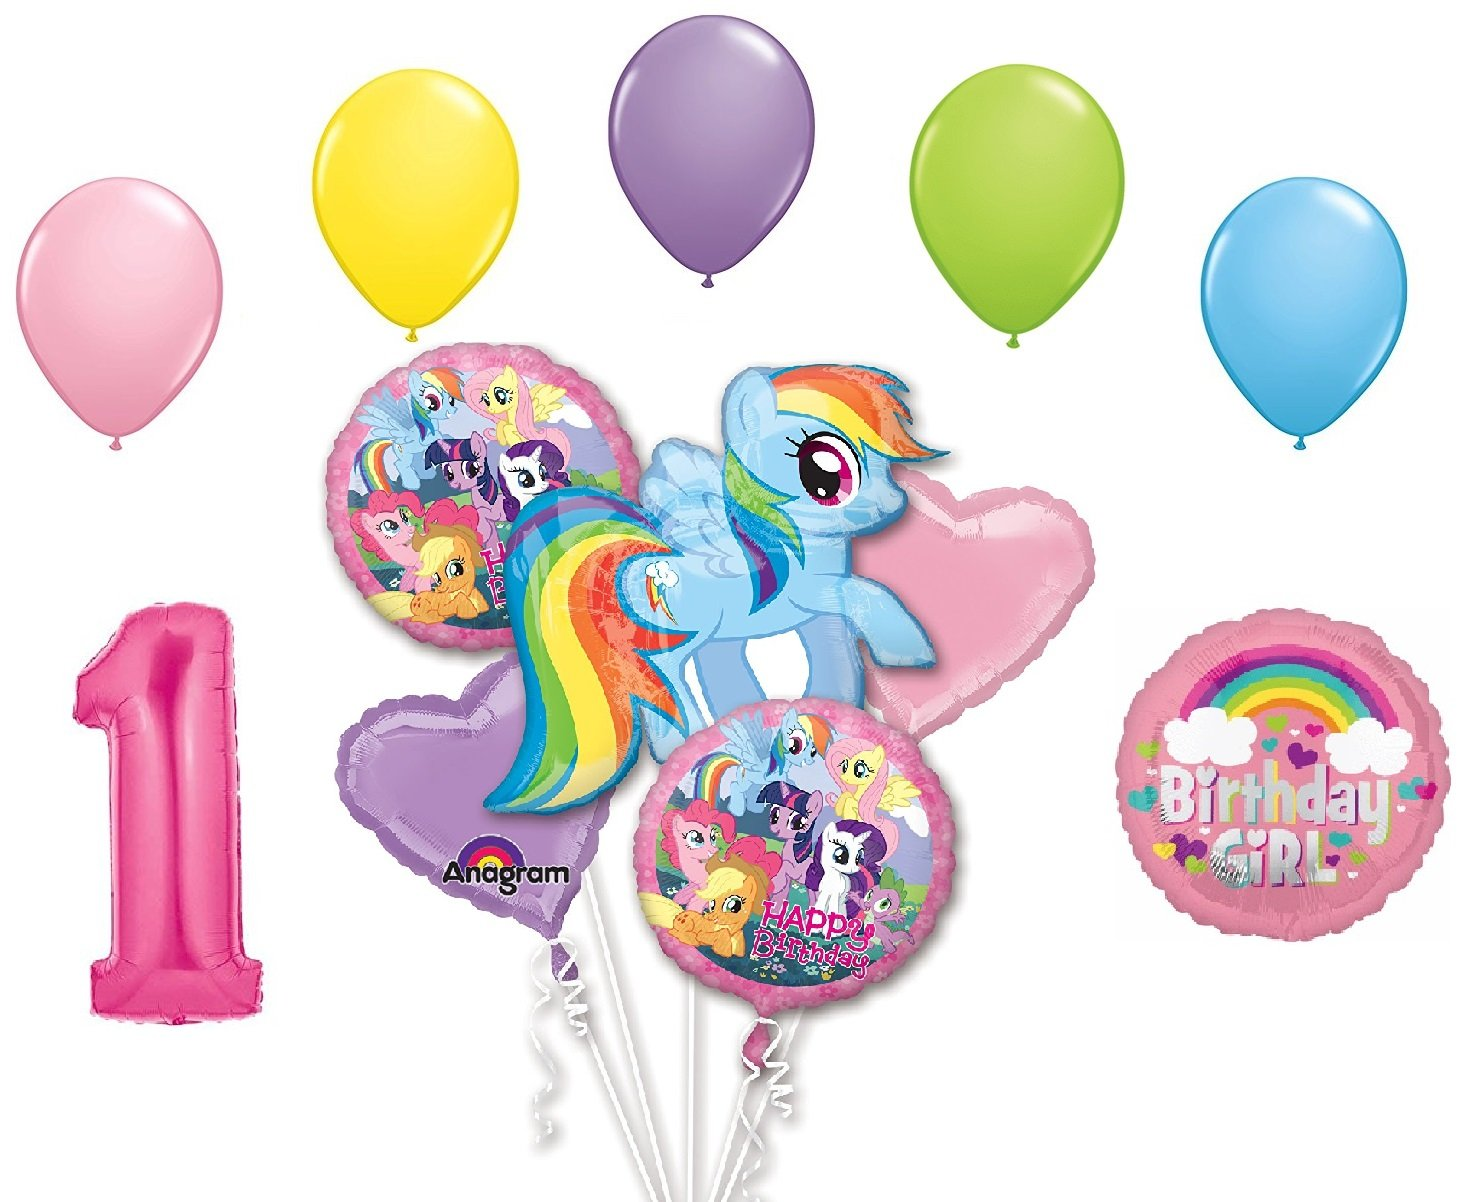 Prismatic My Little Pony Balloon Bouquet Birthday Decorations 5 pieces